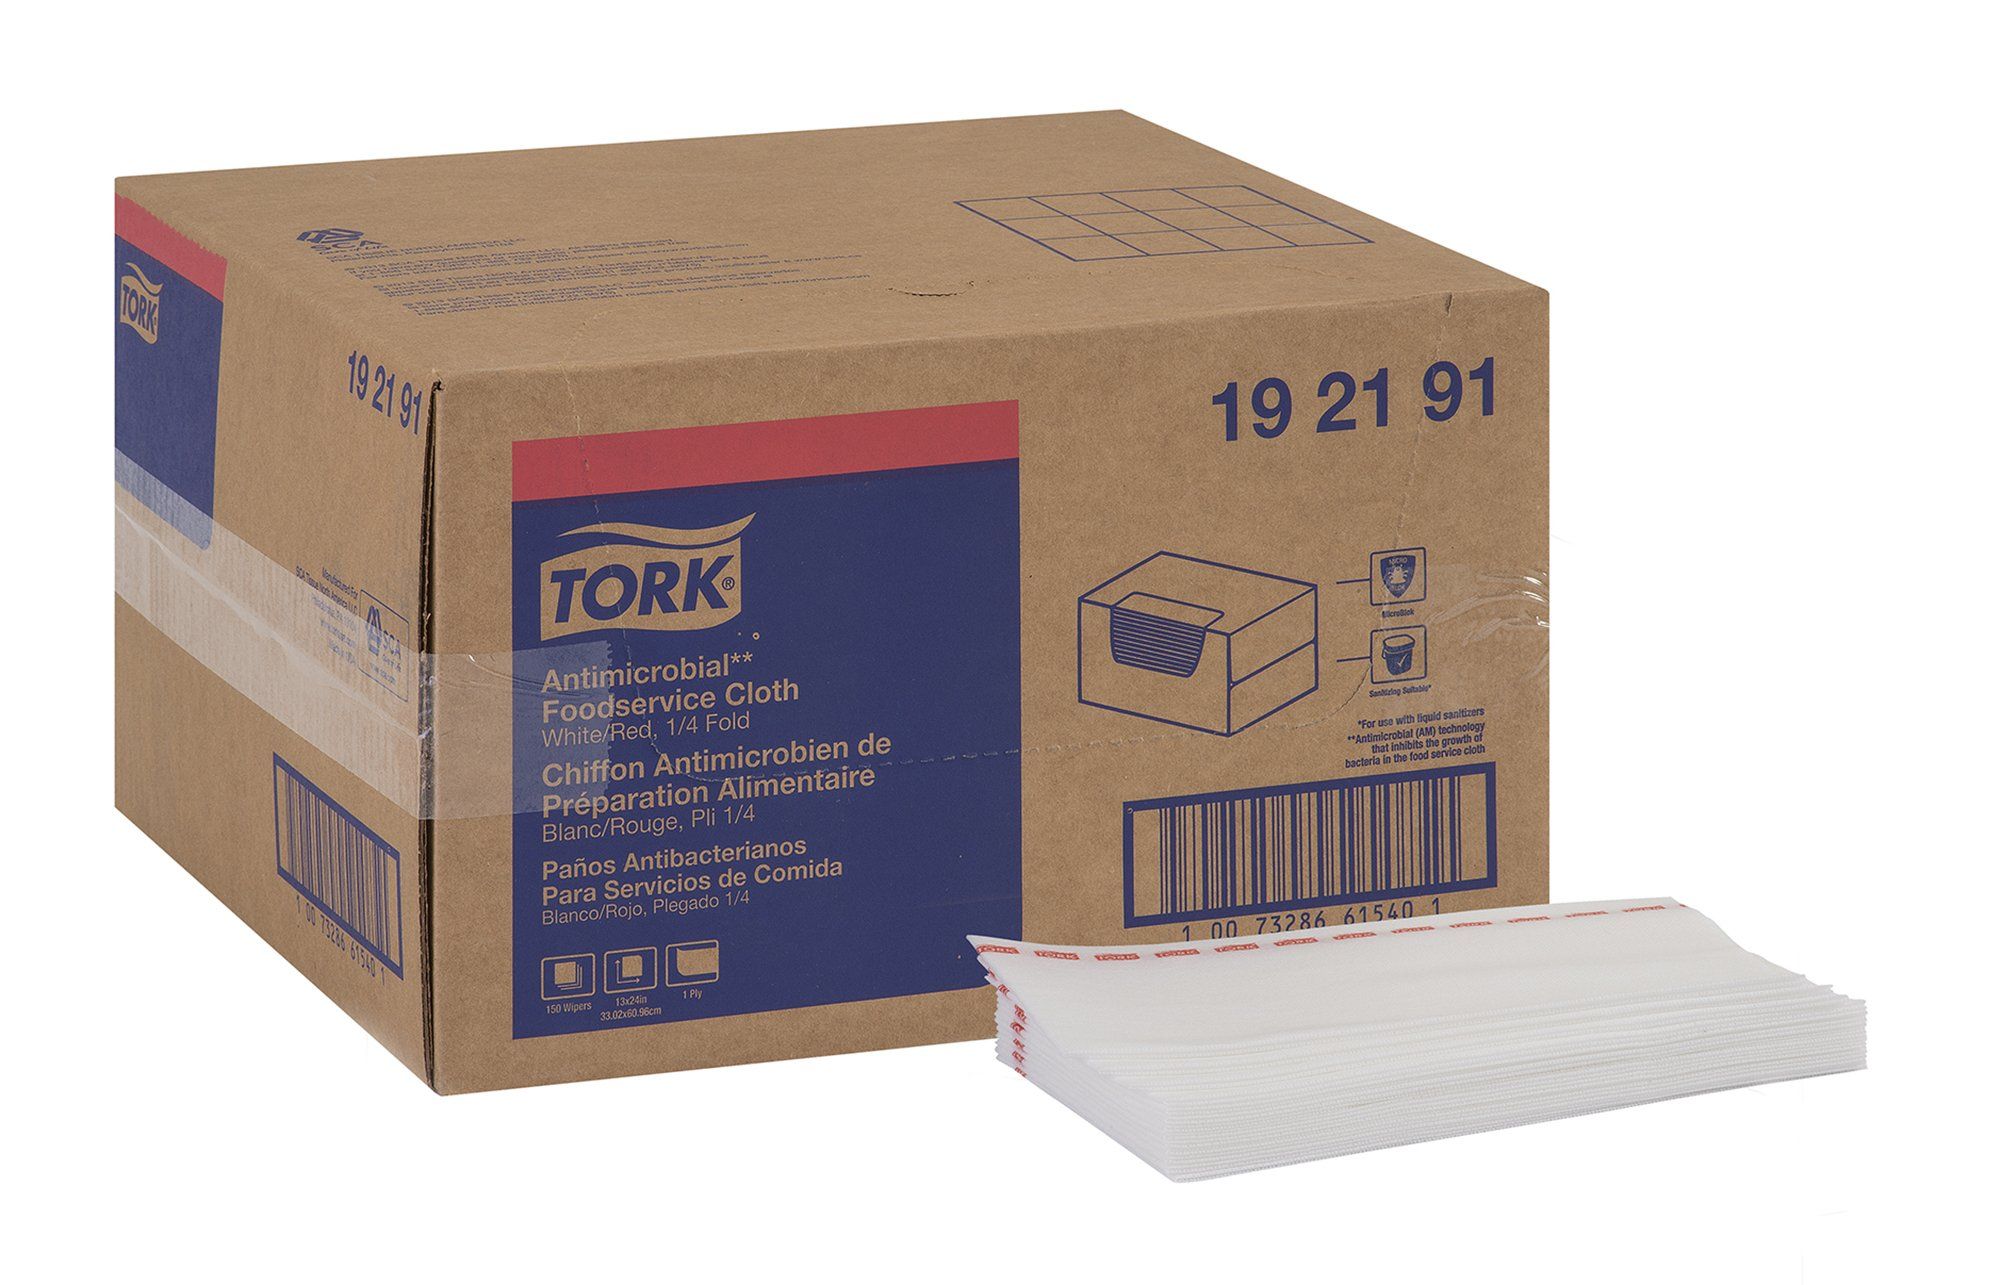 Tork 192191 Antimicrobial Foodservice Cloth, 1/4 Fold, 13'' Width x 24'' Length, White/Red Stripe (Case of 1 Box, 150 Cloths per Box)